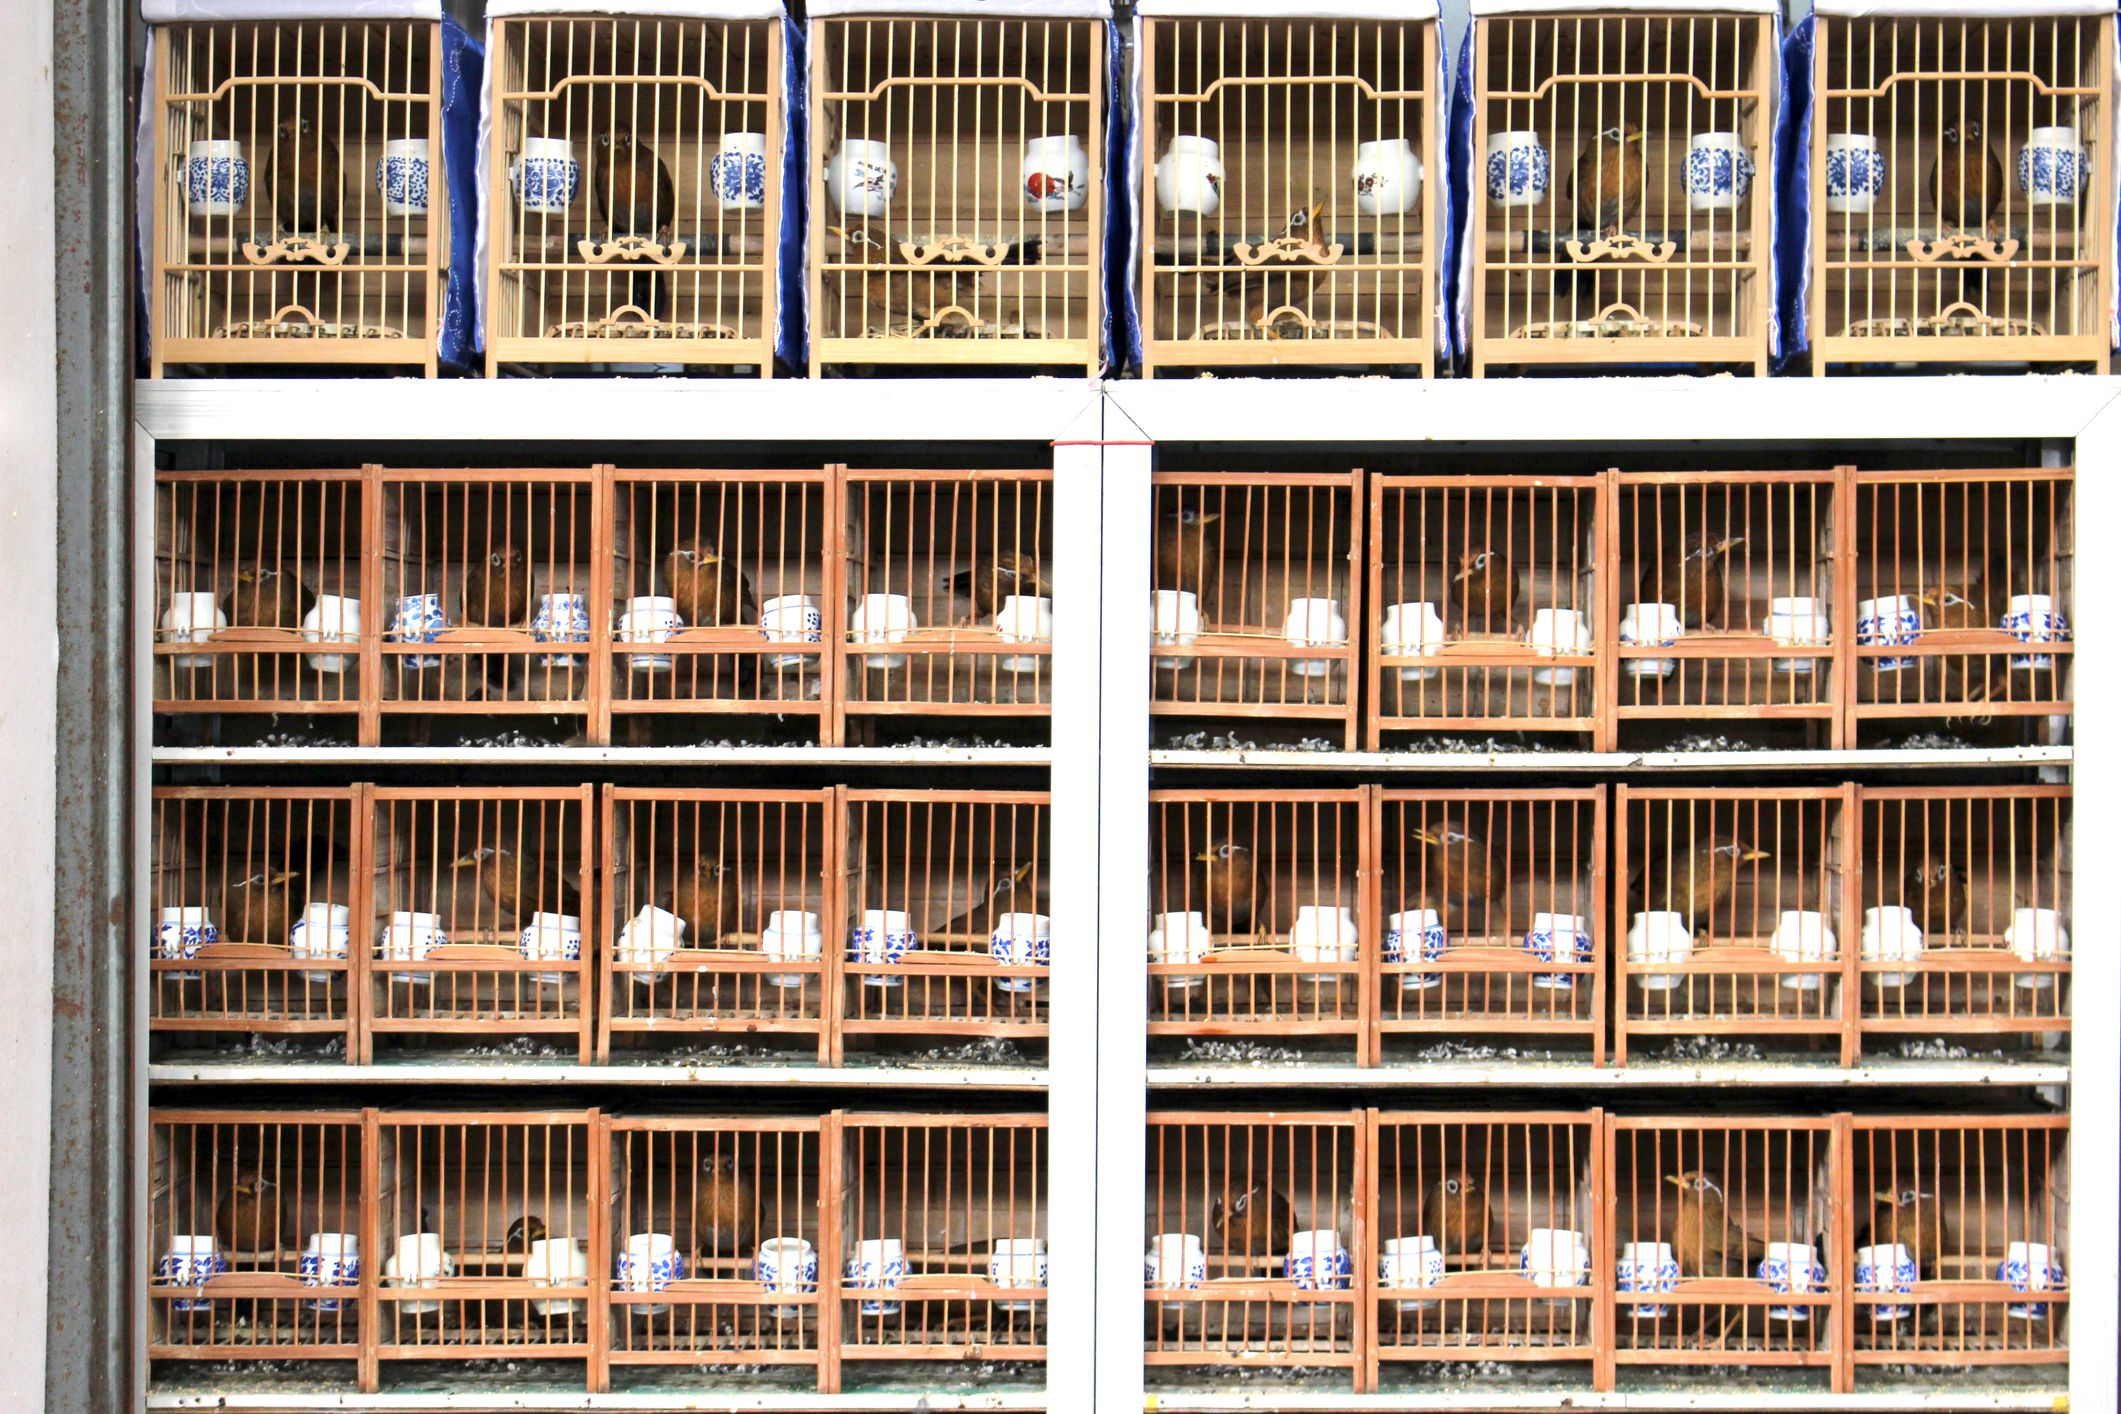 View of bamboo bird cages in the flower, bird, cricket, and fish market in the old part of Shanghai, China.